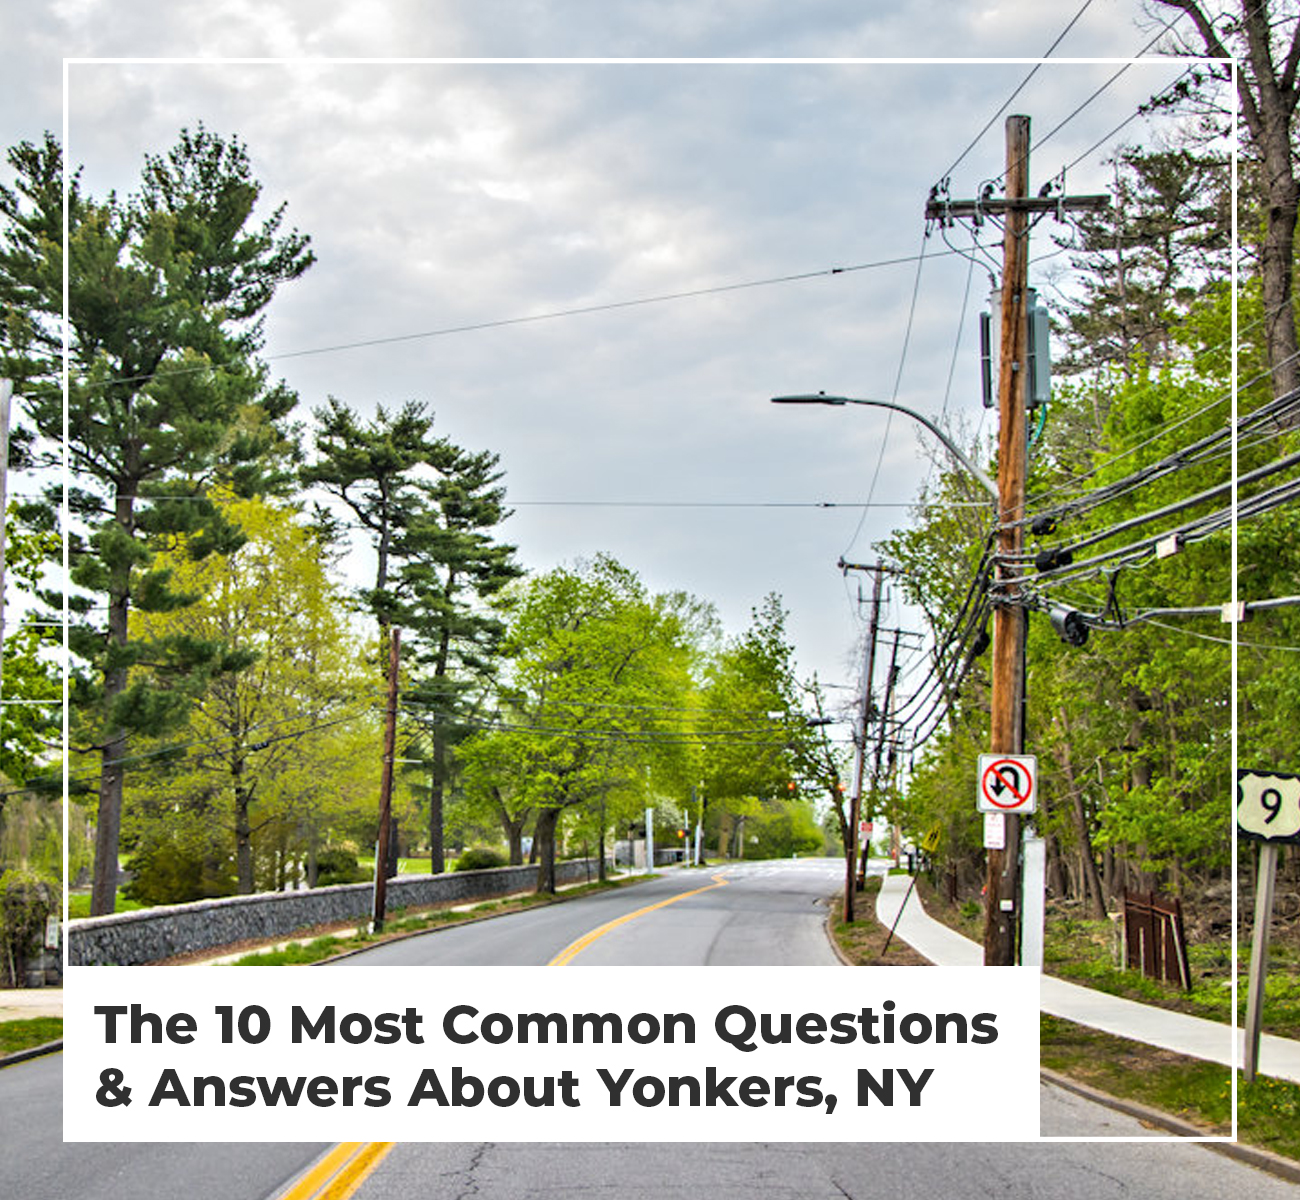 Most Common Questions & Answers Yonkers, NY